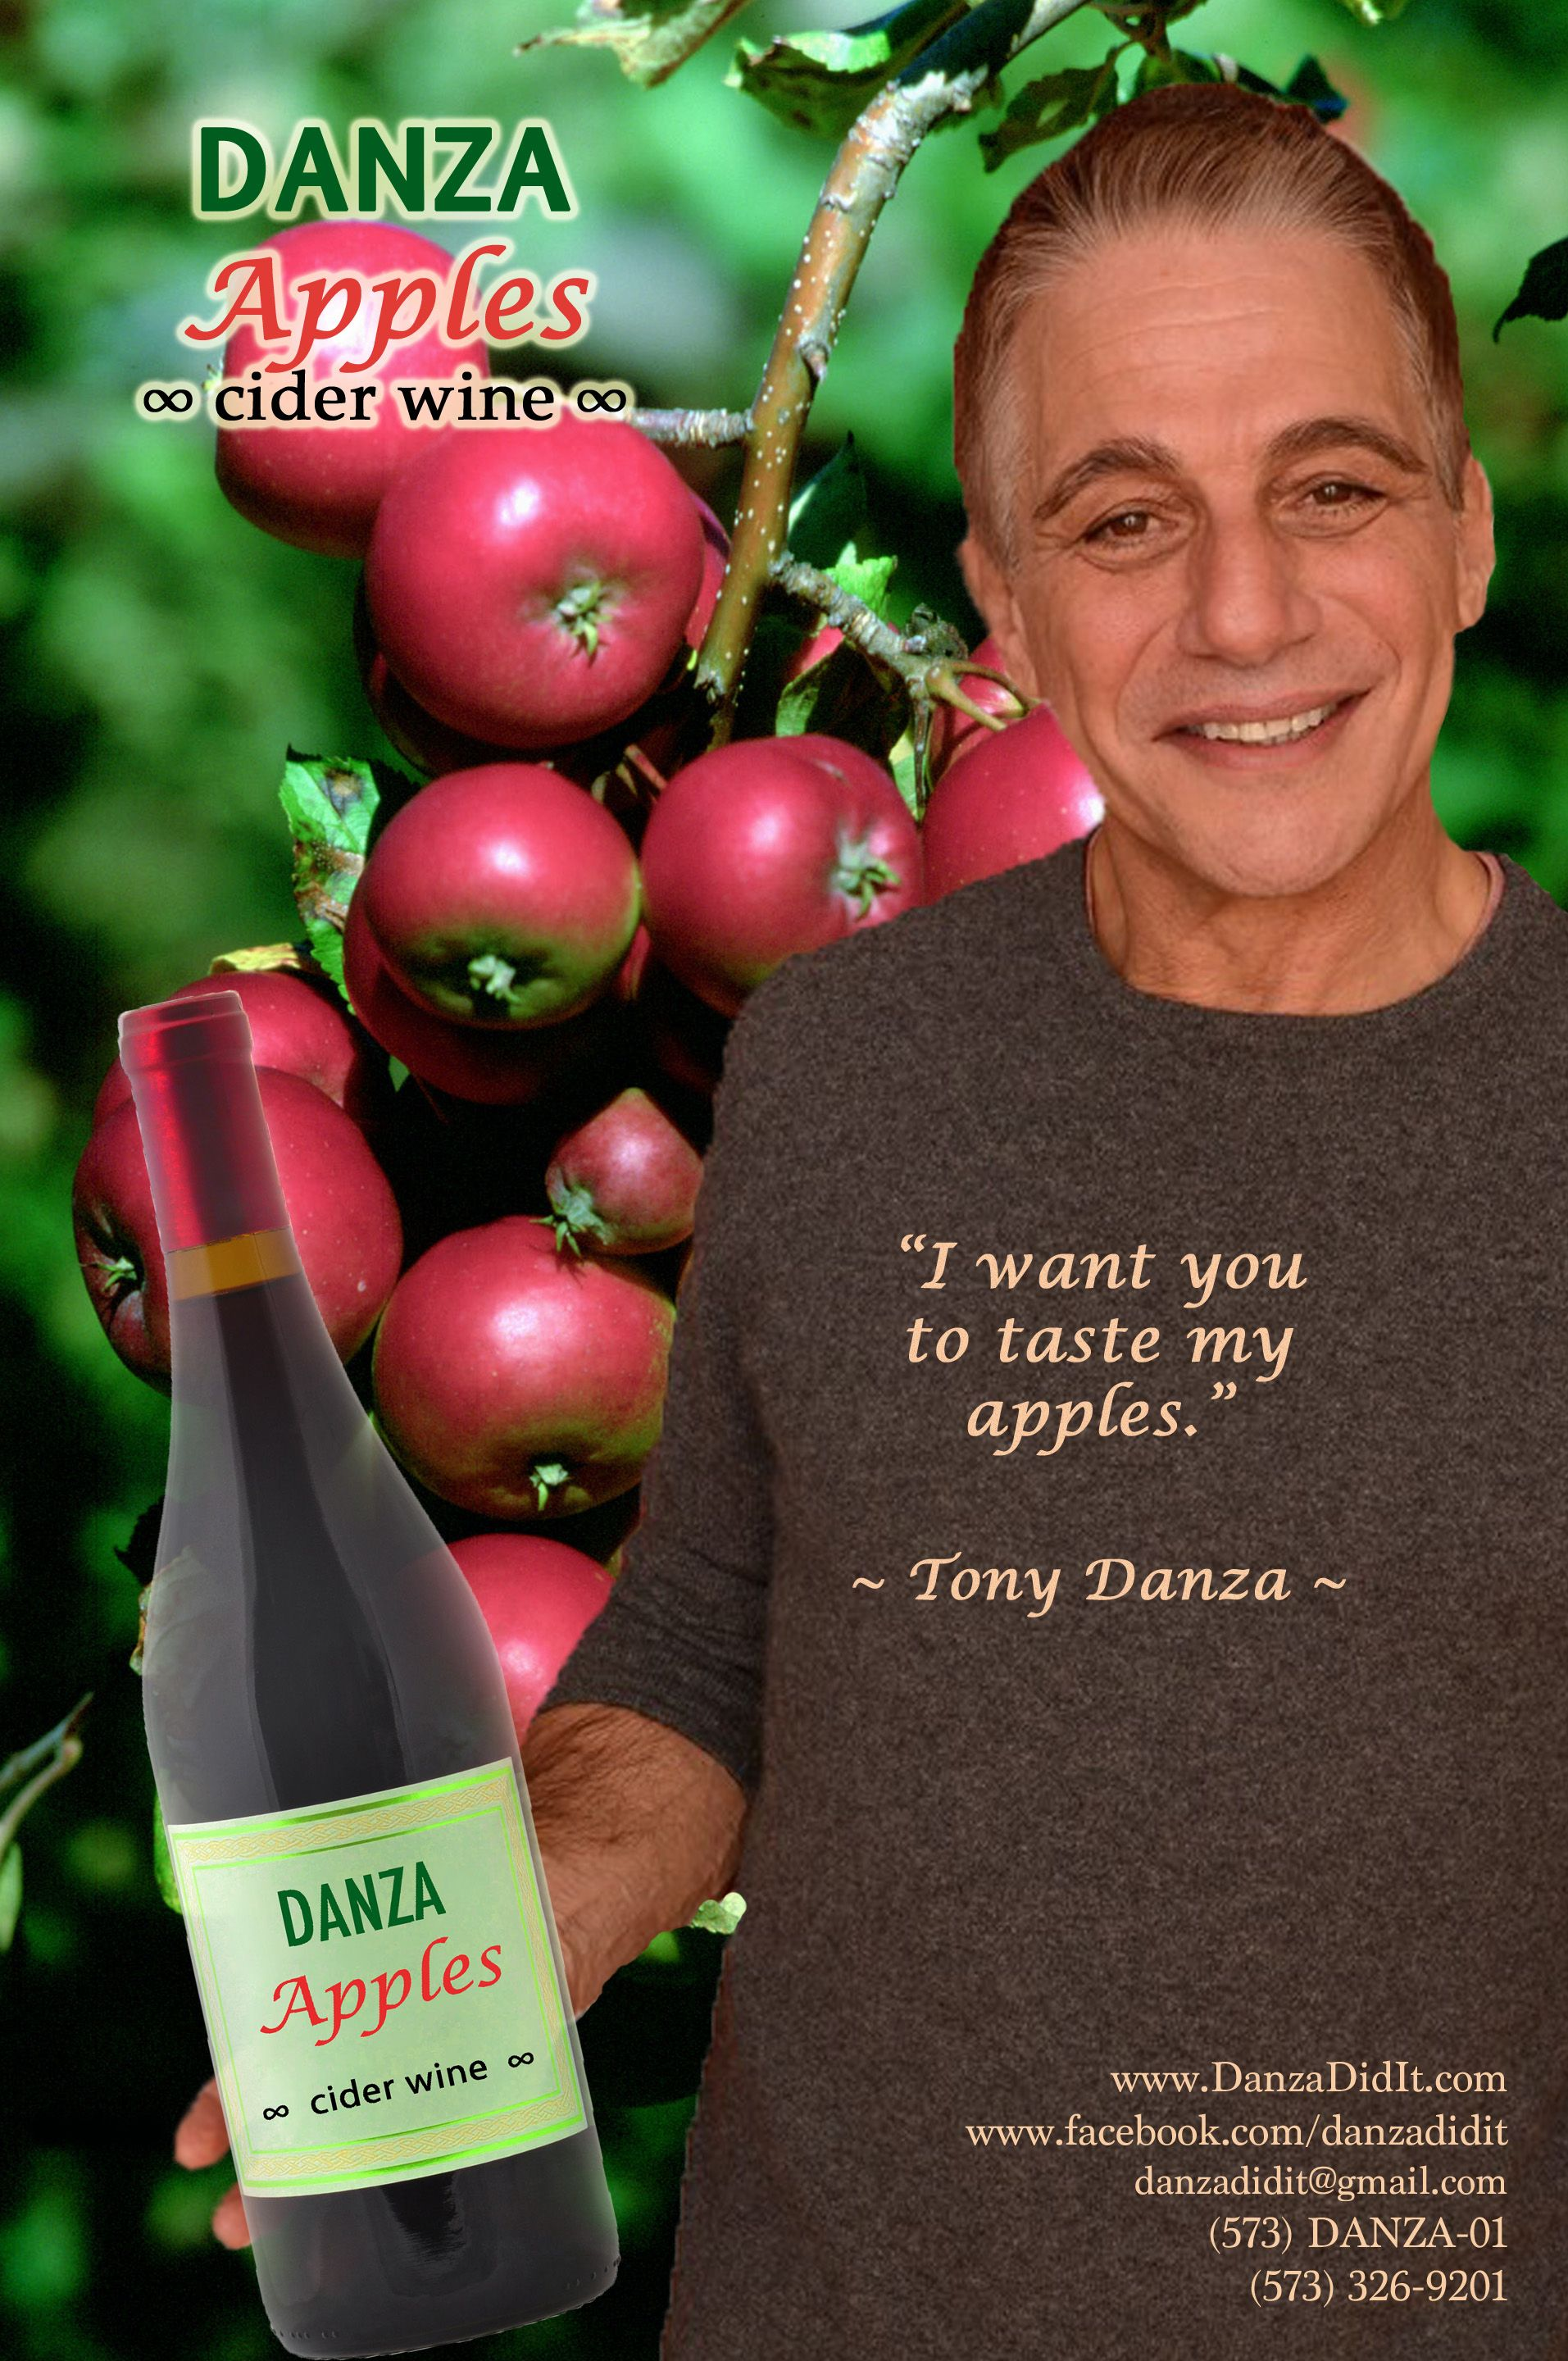 The Taste Of Sin Just Got Whole Lot Tastier Take A Visit To The Garden Of Eden With A Sip Of Danza Apples Cider Wine I Want Y Tony Danza